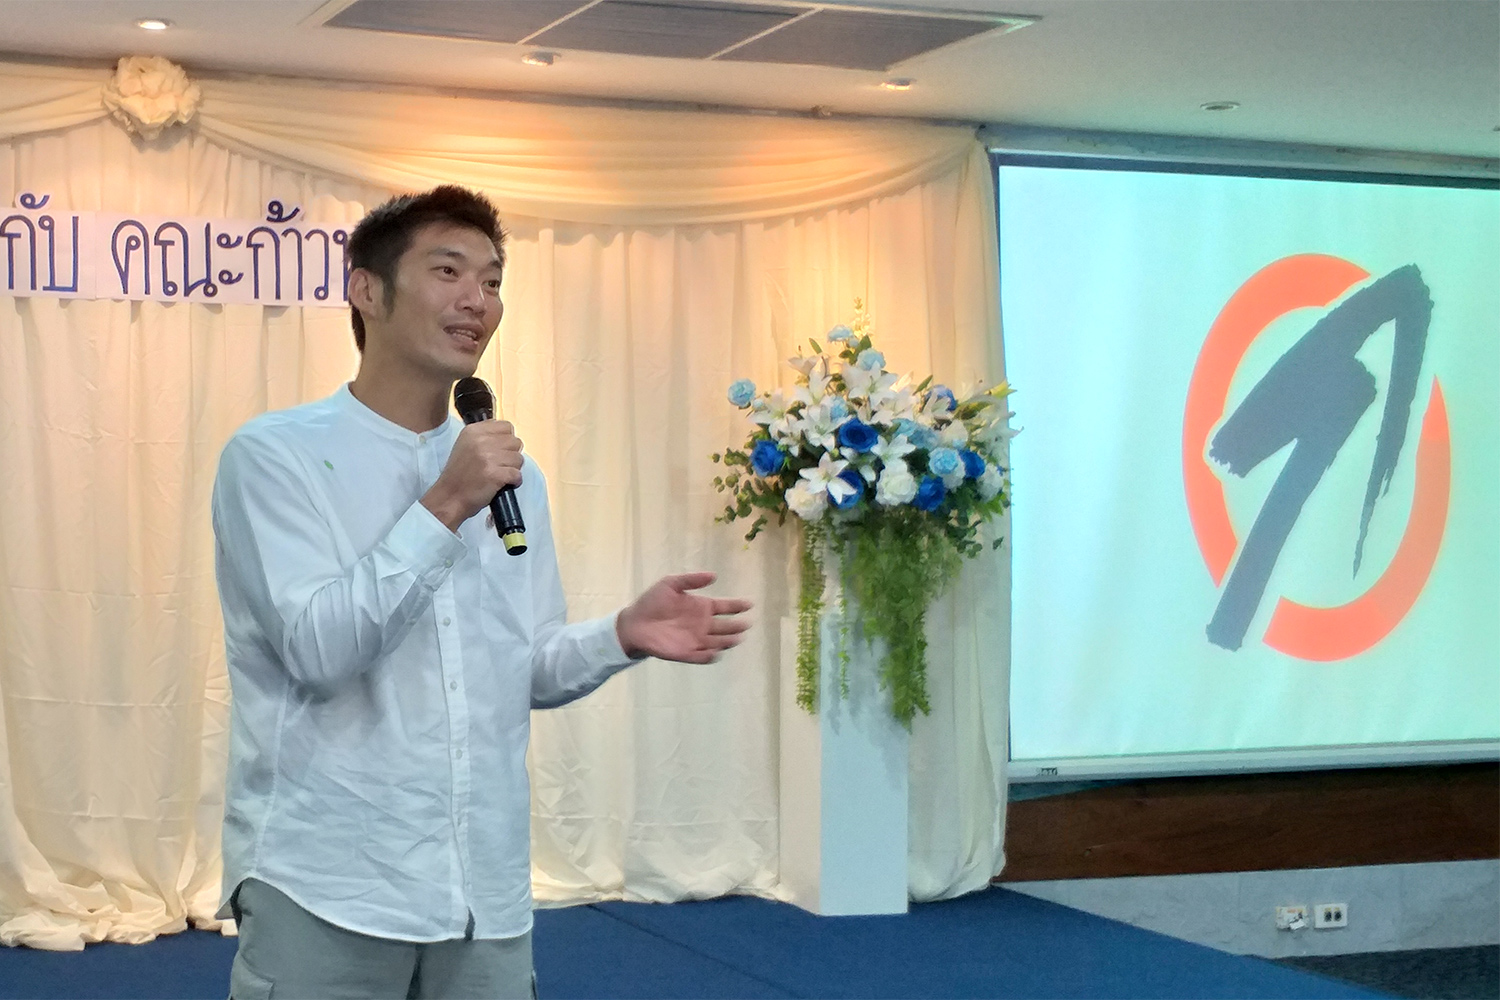 Thanathorn Juangroongruangkit, leader of the Progressive Movement, addresses a forum in Phuket on Sunday. (Photo: Achadtaya Chuenniran)